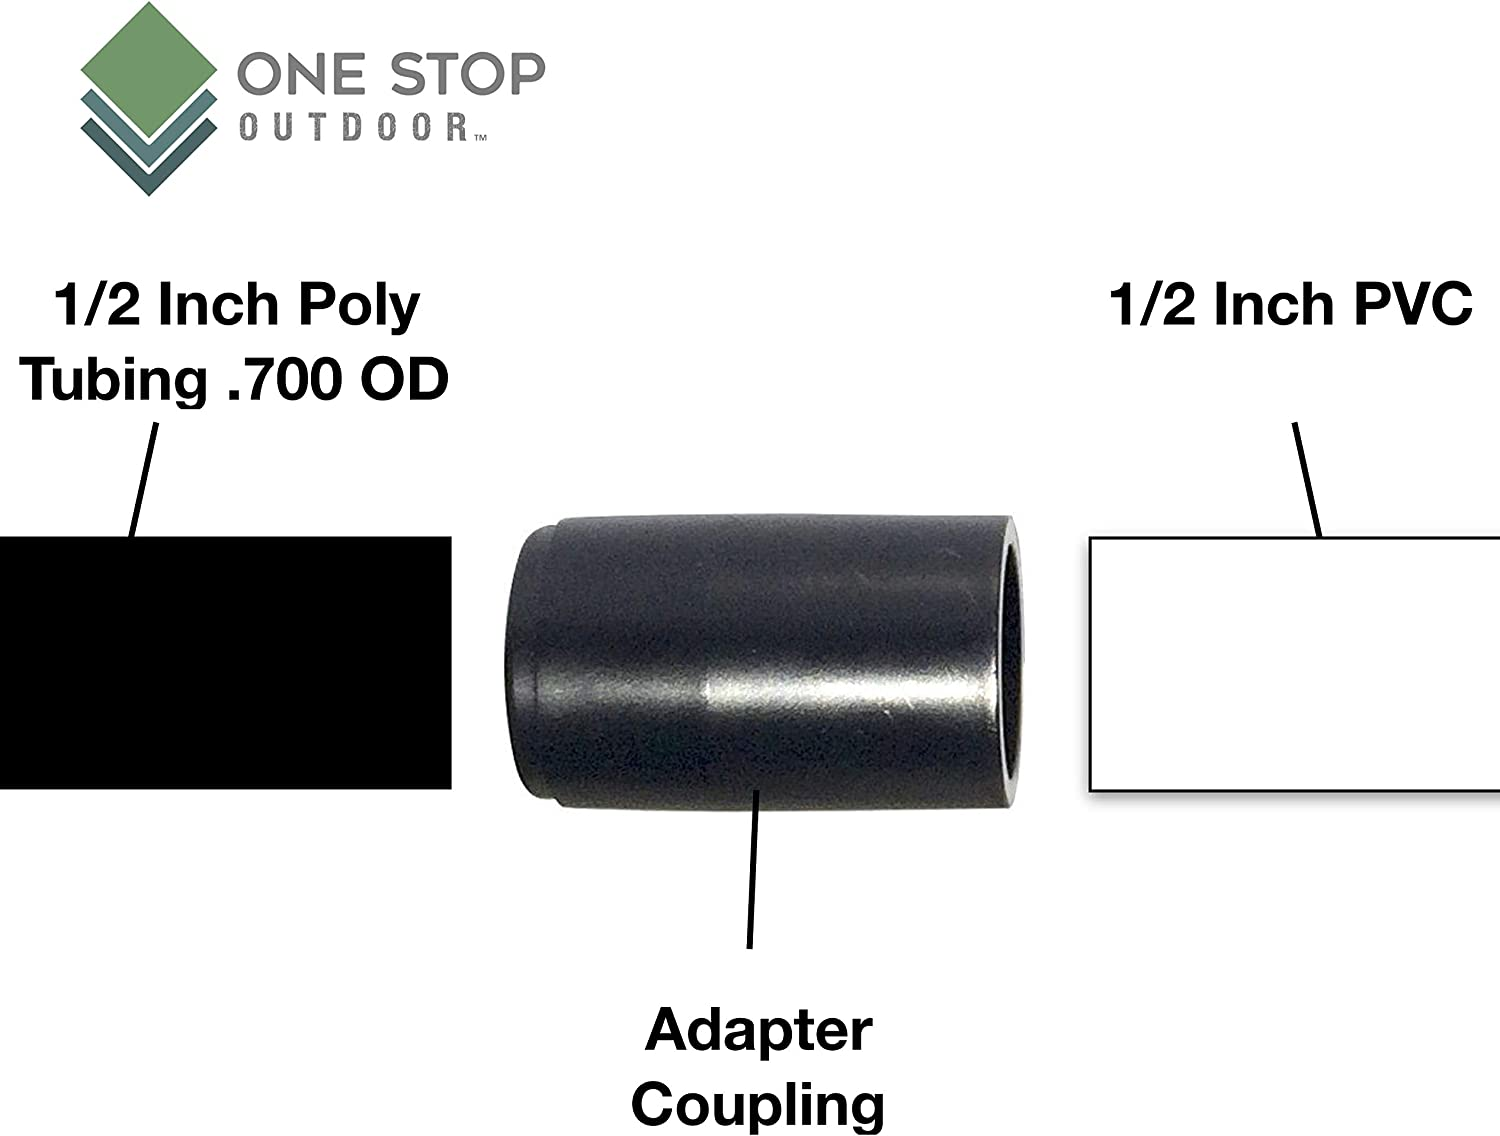 PVC To Poly Drip Irrigation Hydroponics Tubing Coupling Adapter Connects 1//2 PVC to .700od Poly Tubing 25-Pack